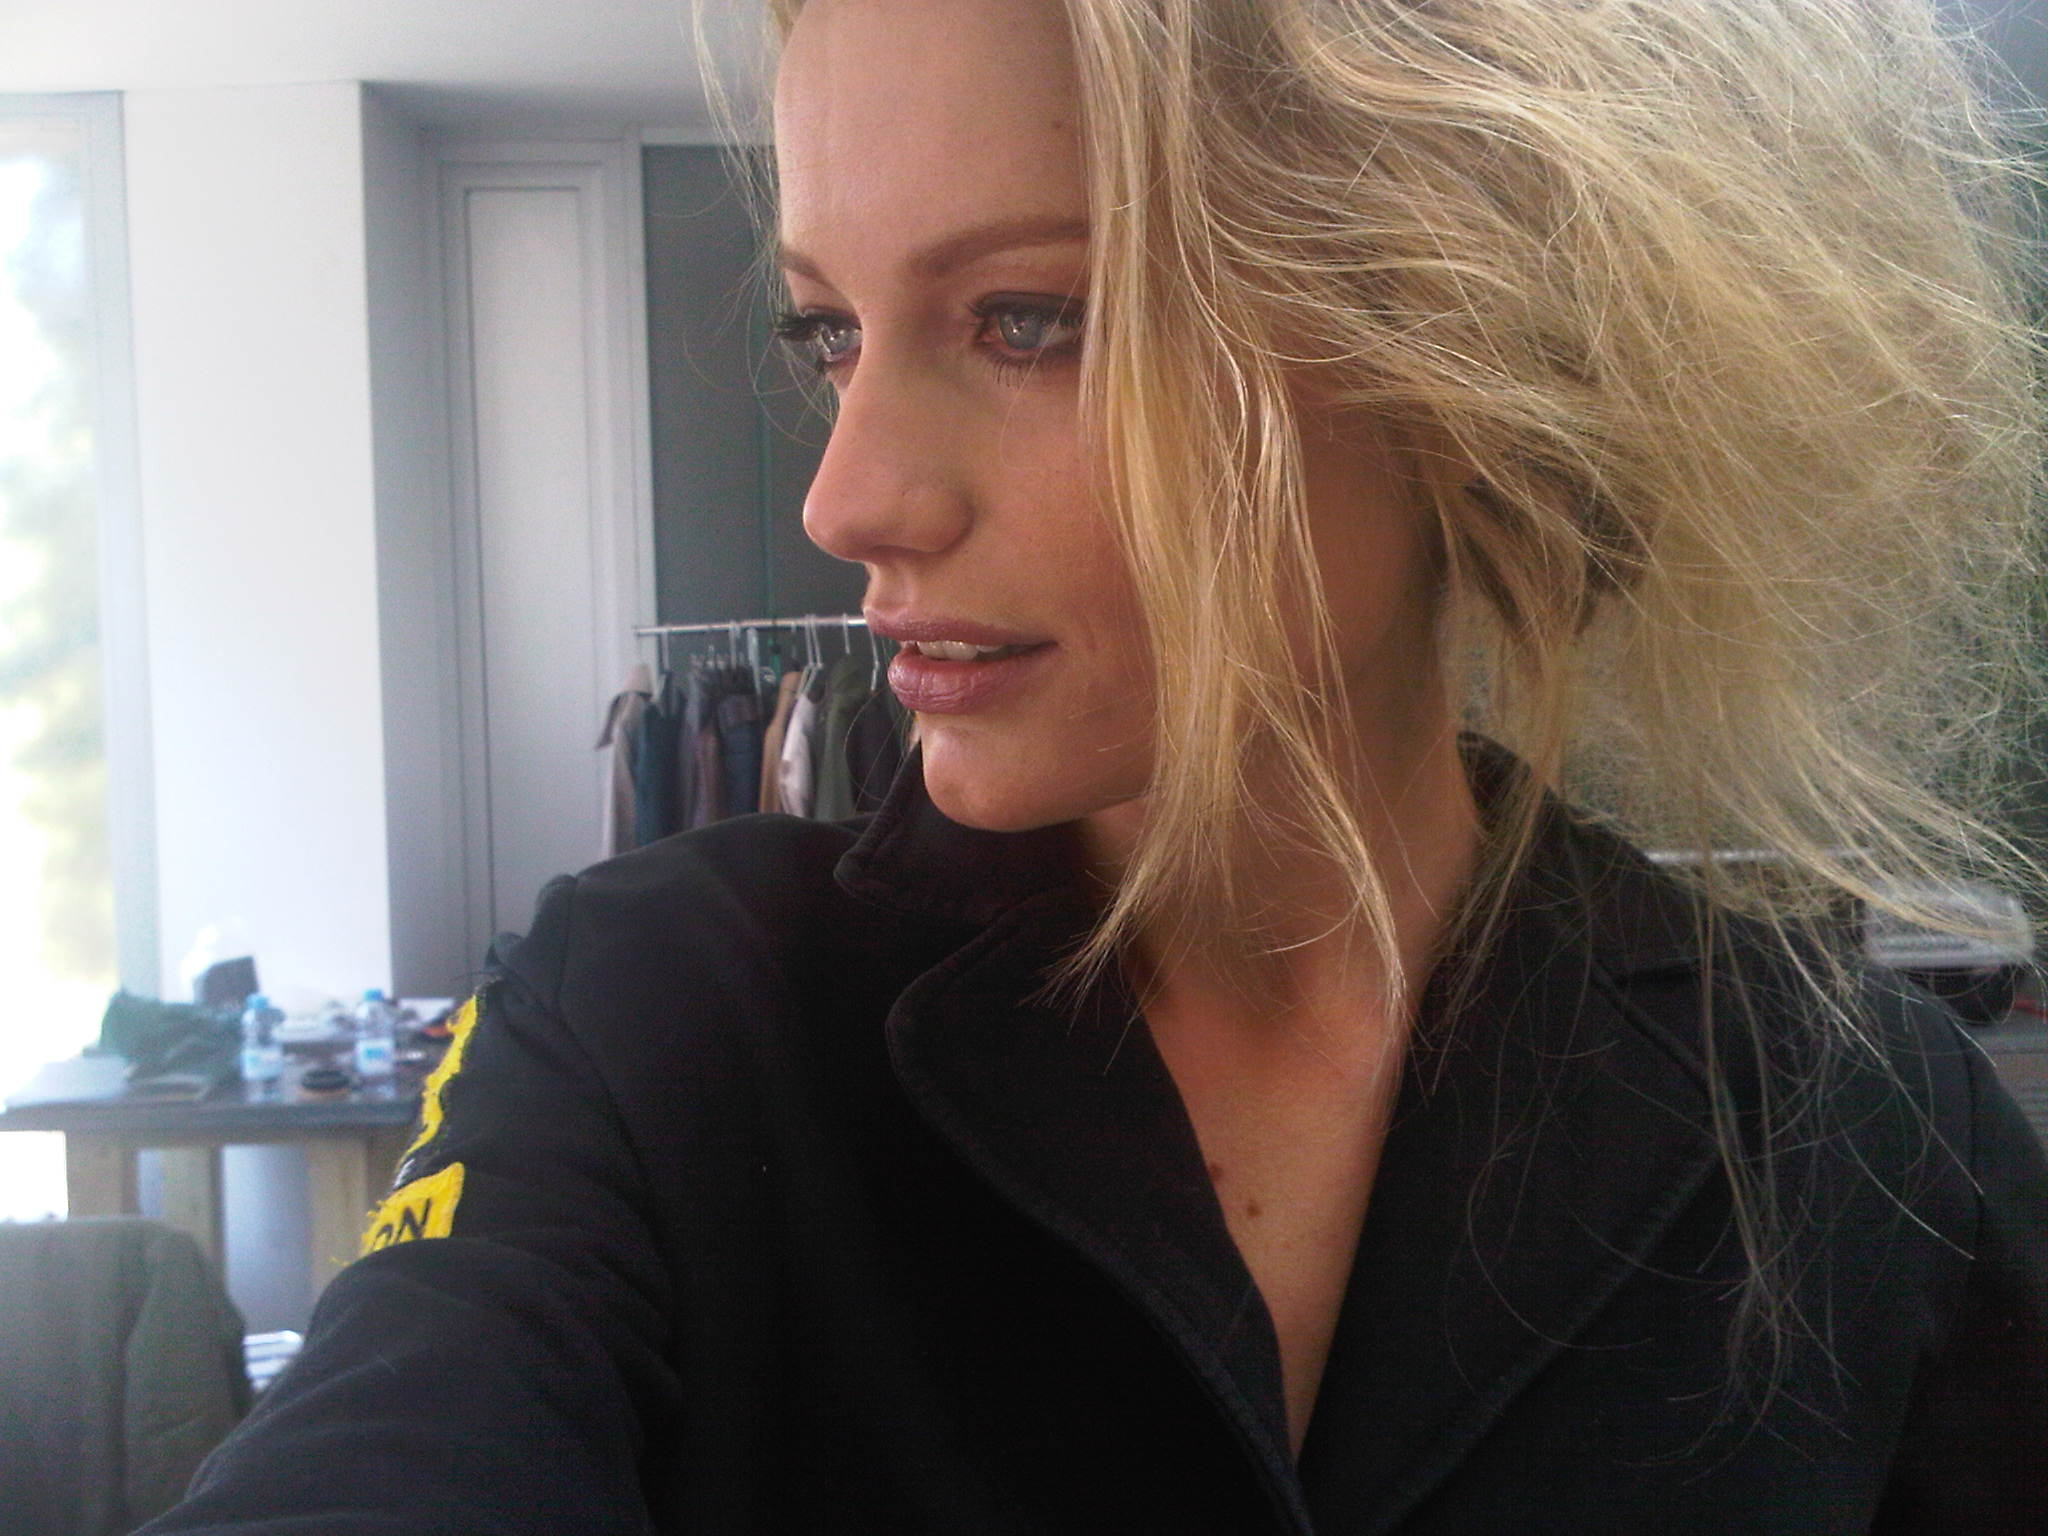 Renata Zanchi - Make-up done! Waiting for the final touch on my hair!